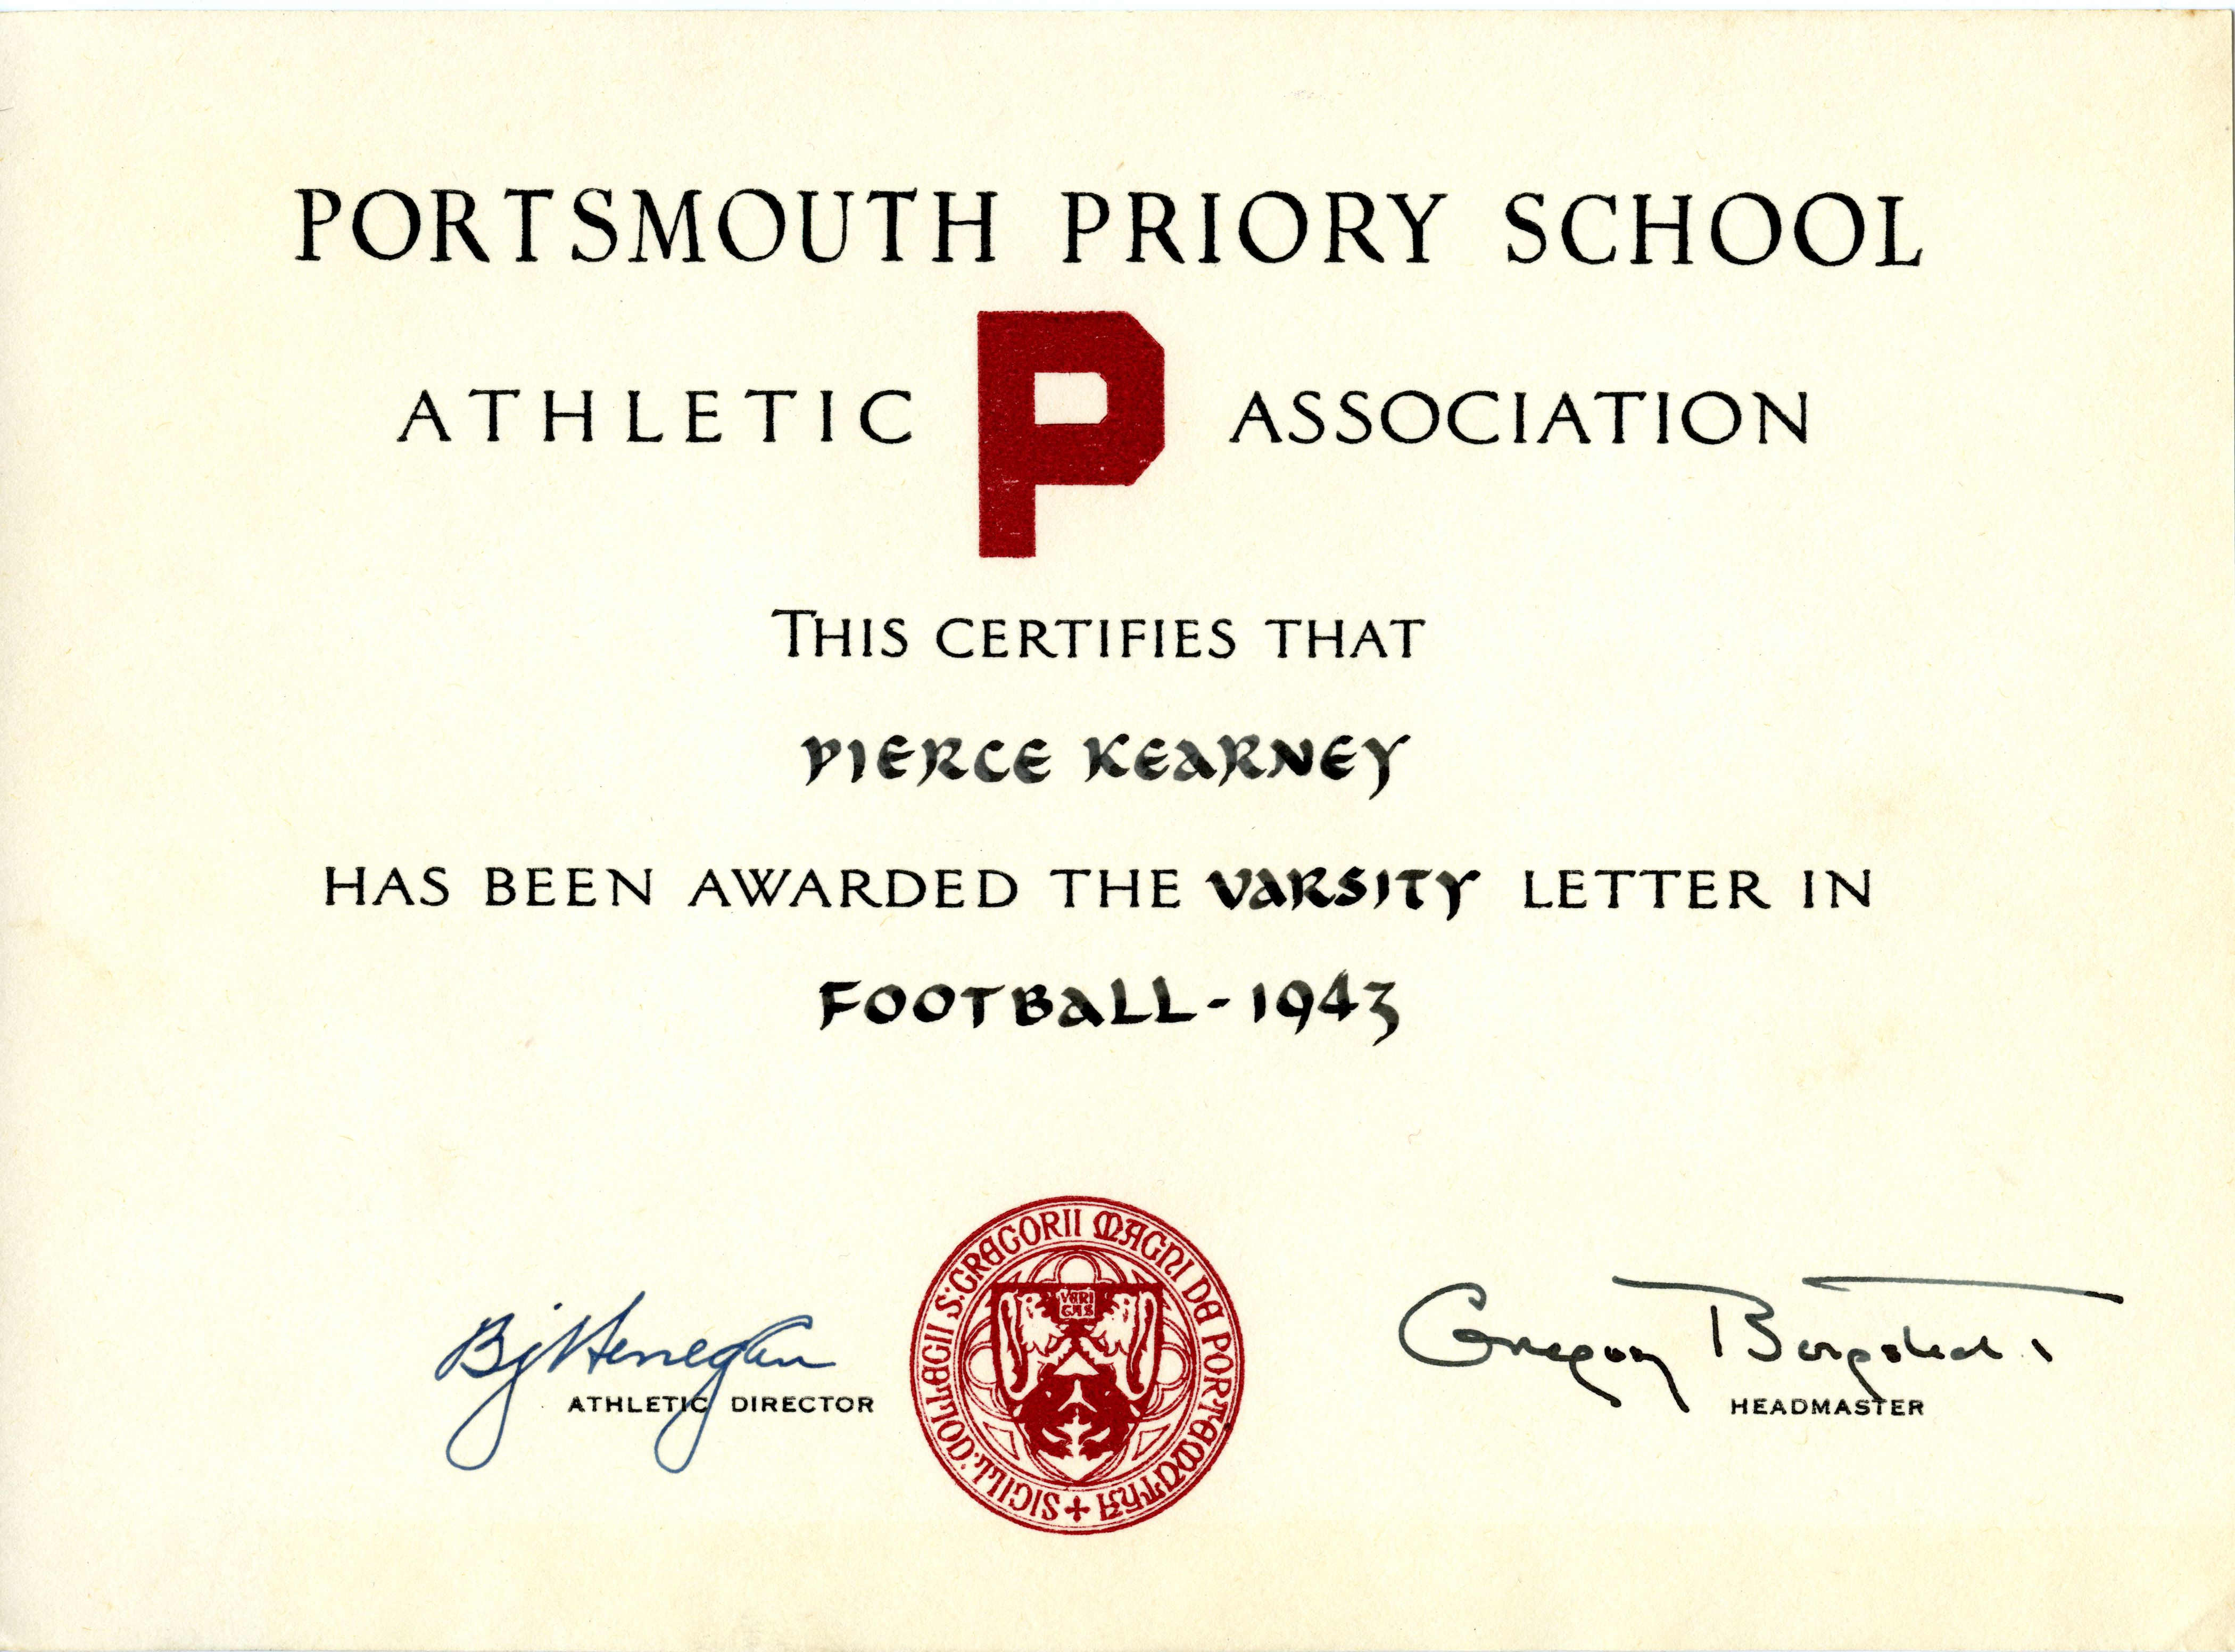 1943 portsmouth priory athletics certificate for football from the